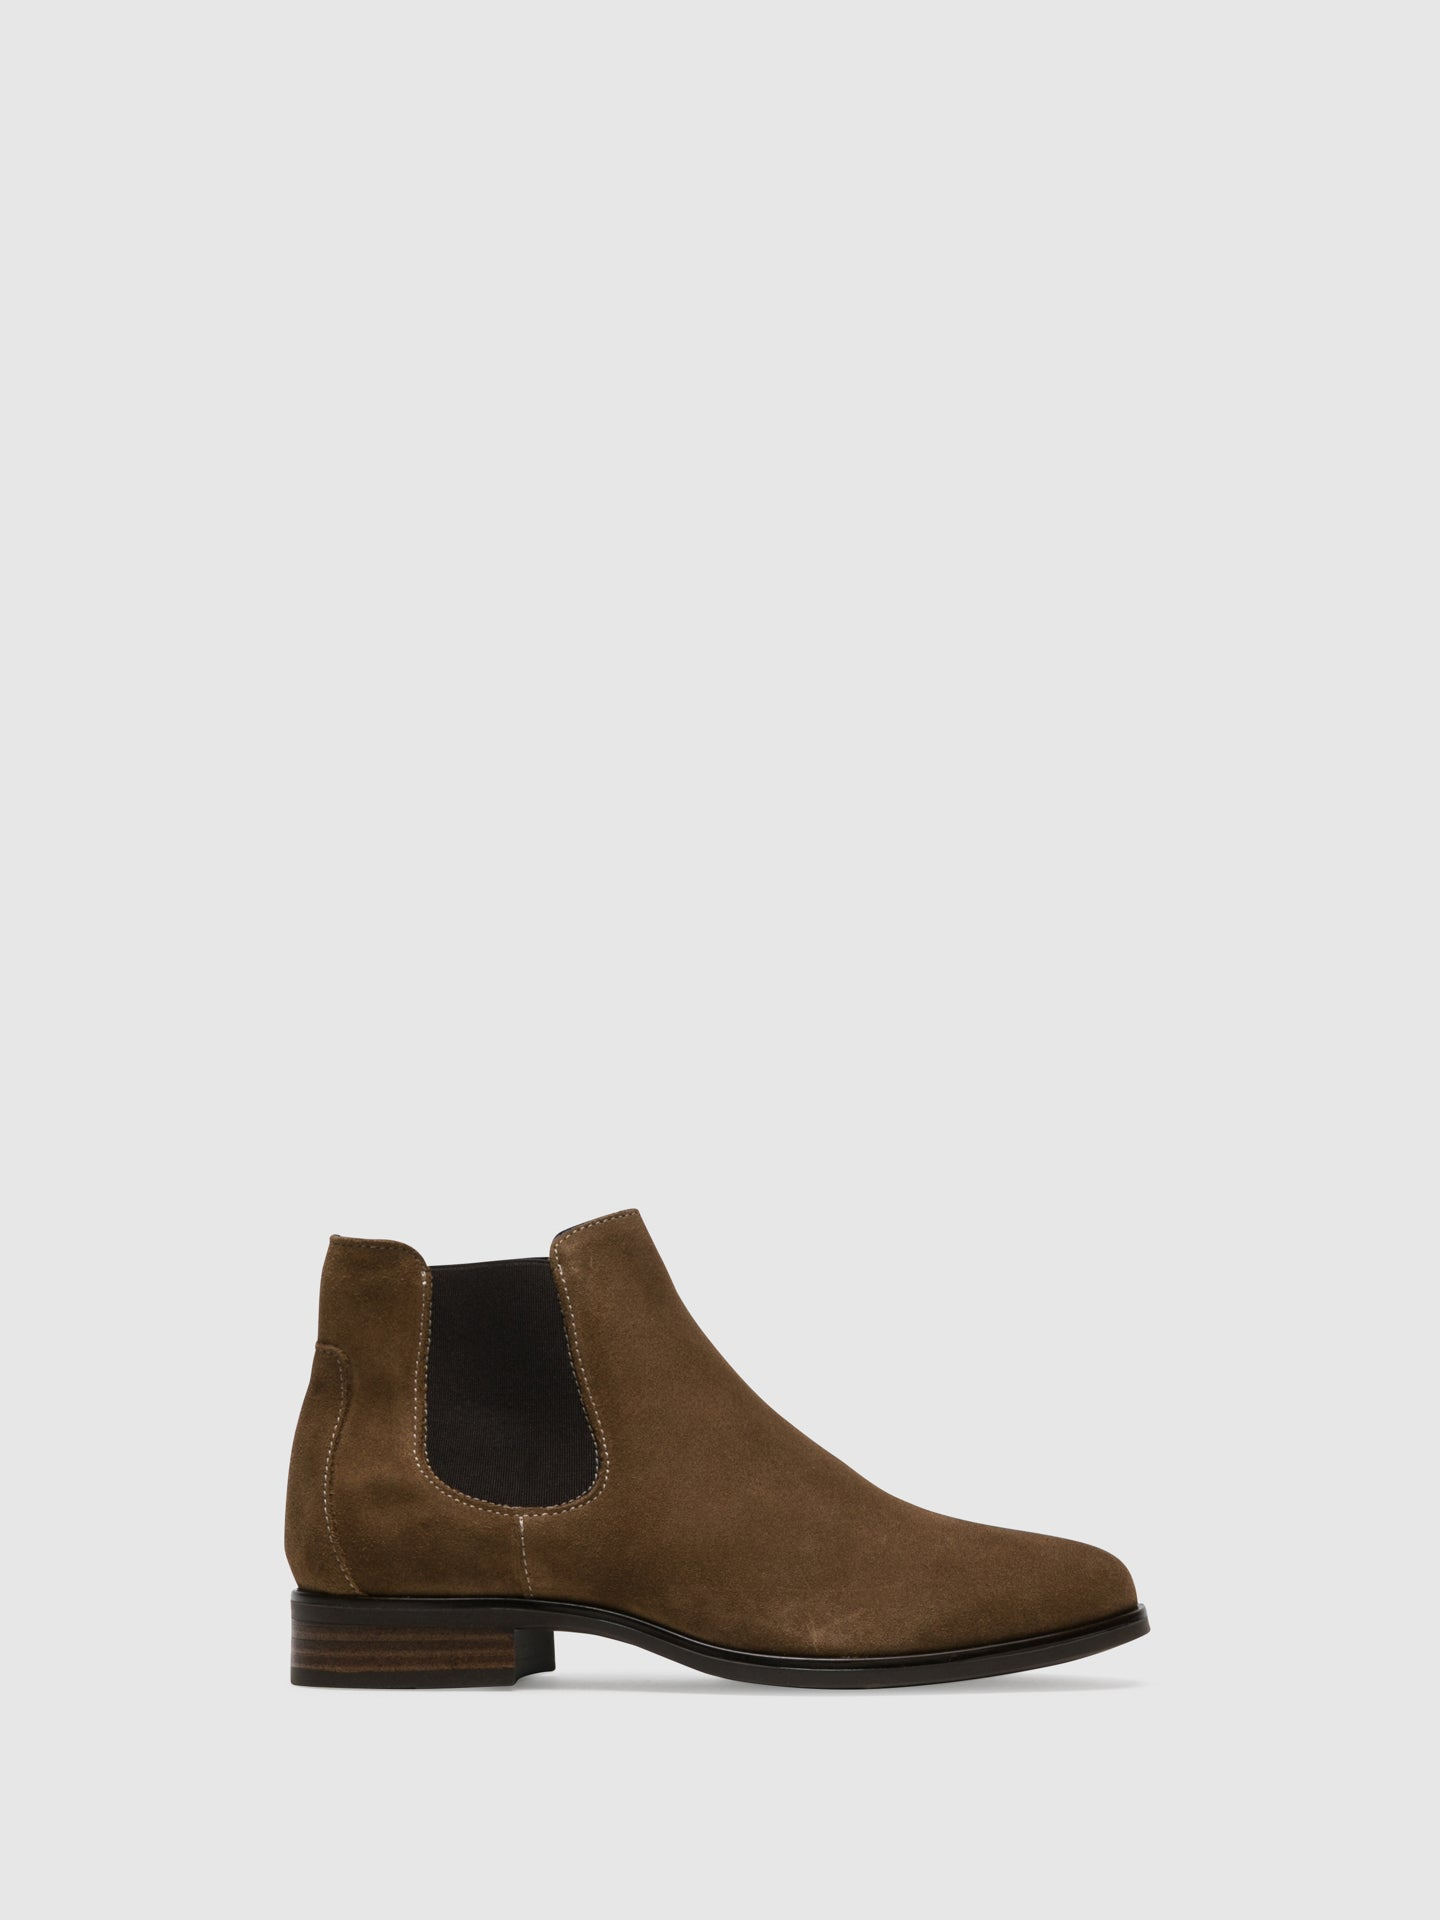 Foreva Wheat Elasticated Ankle Boots